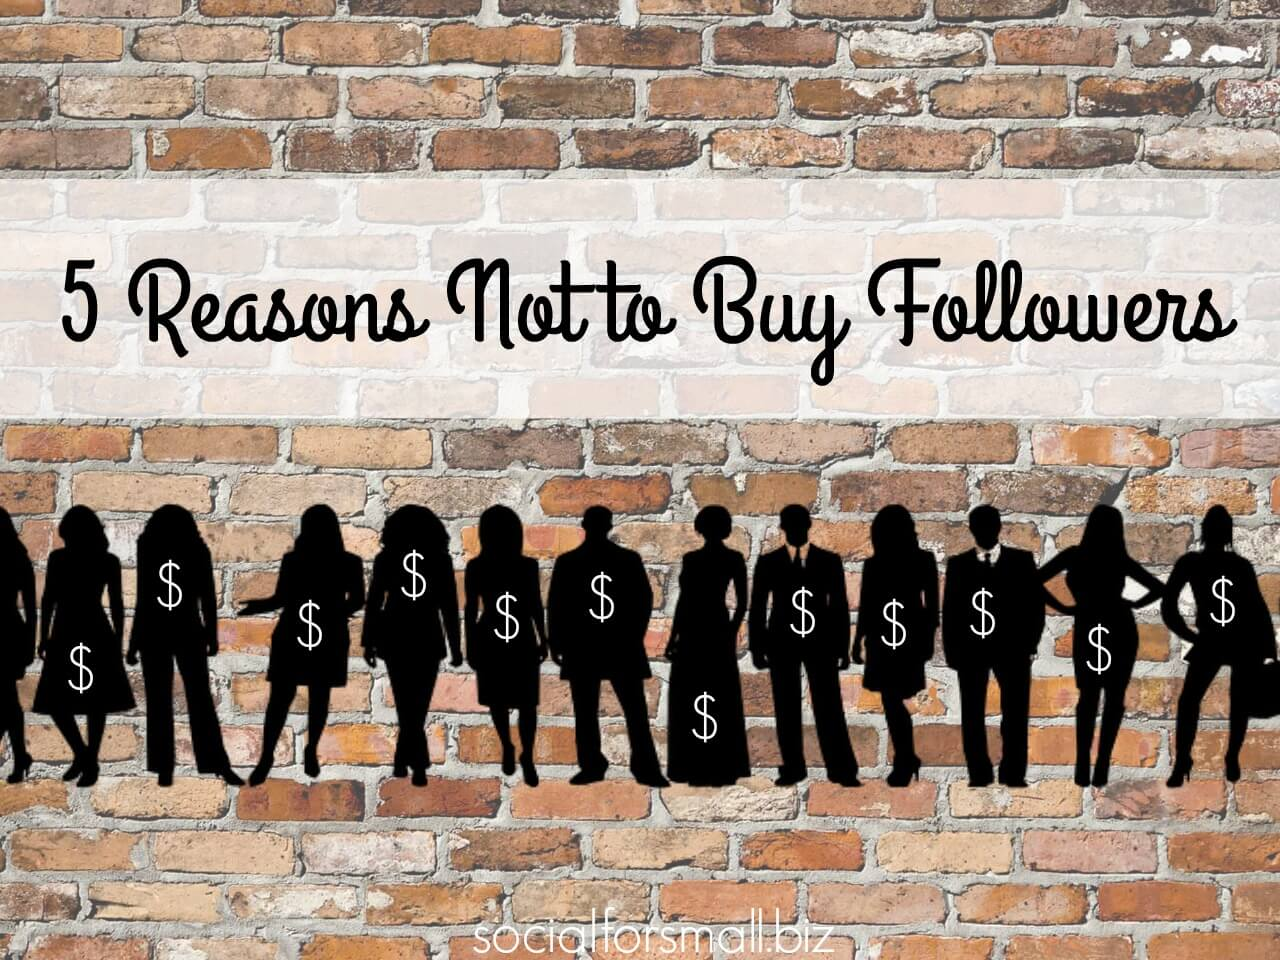 5 reasons not to buy followers